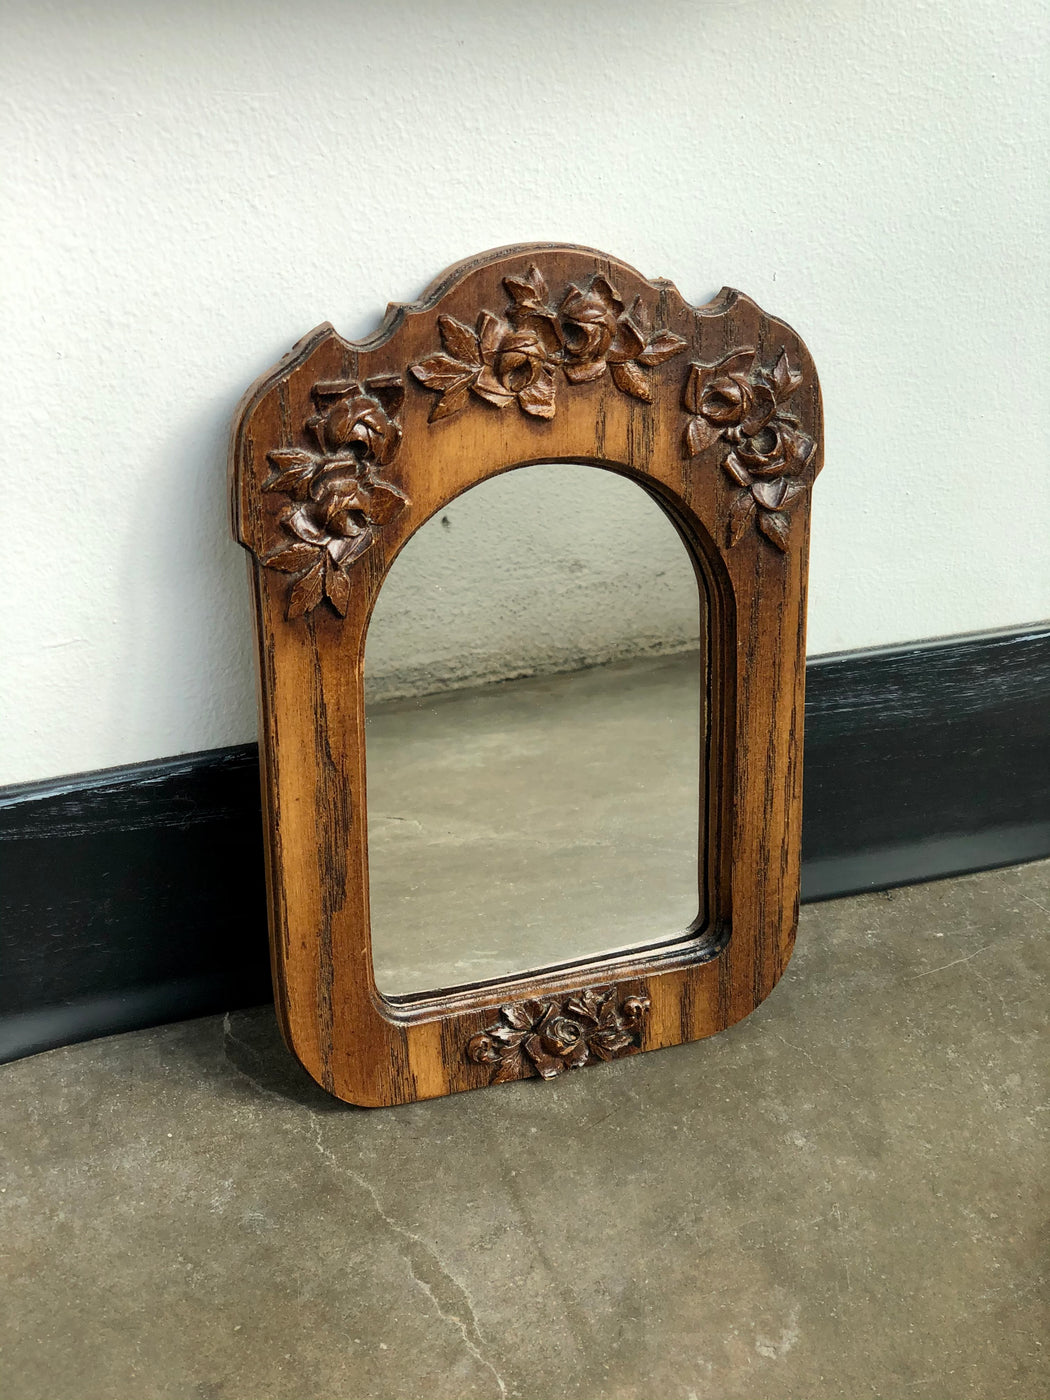 Vintage Wooden Mirror with Floral Carving